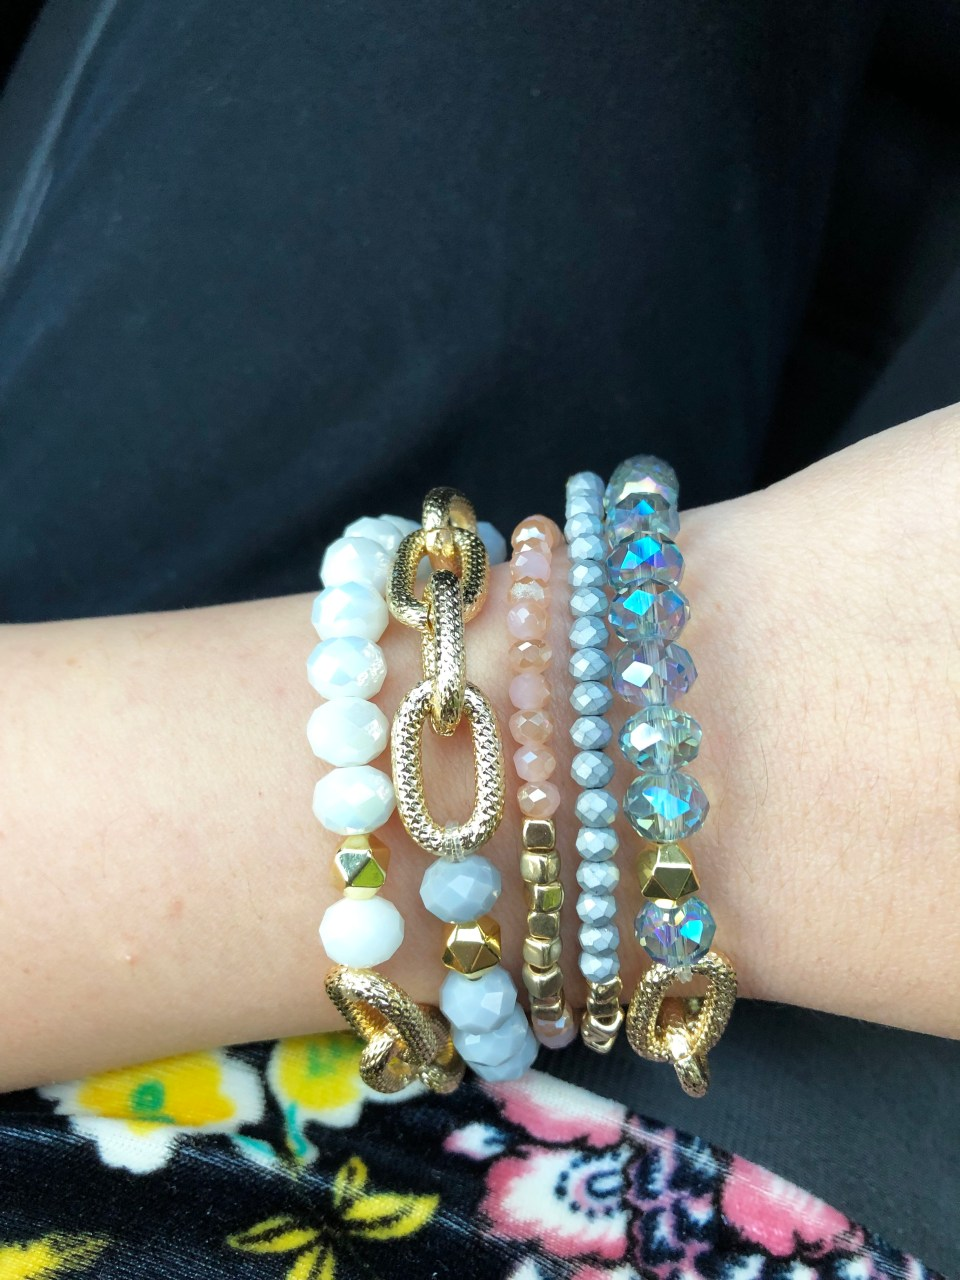 The Styled Collection - Beaded Bracelet Stack 9